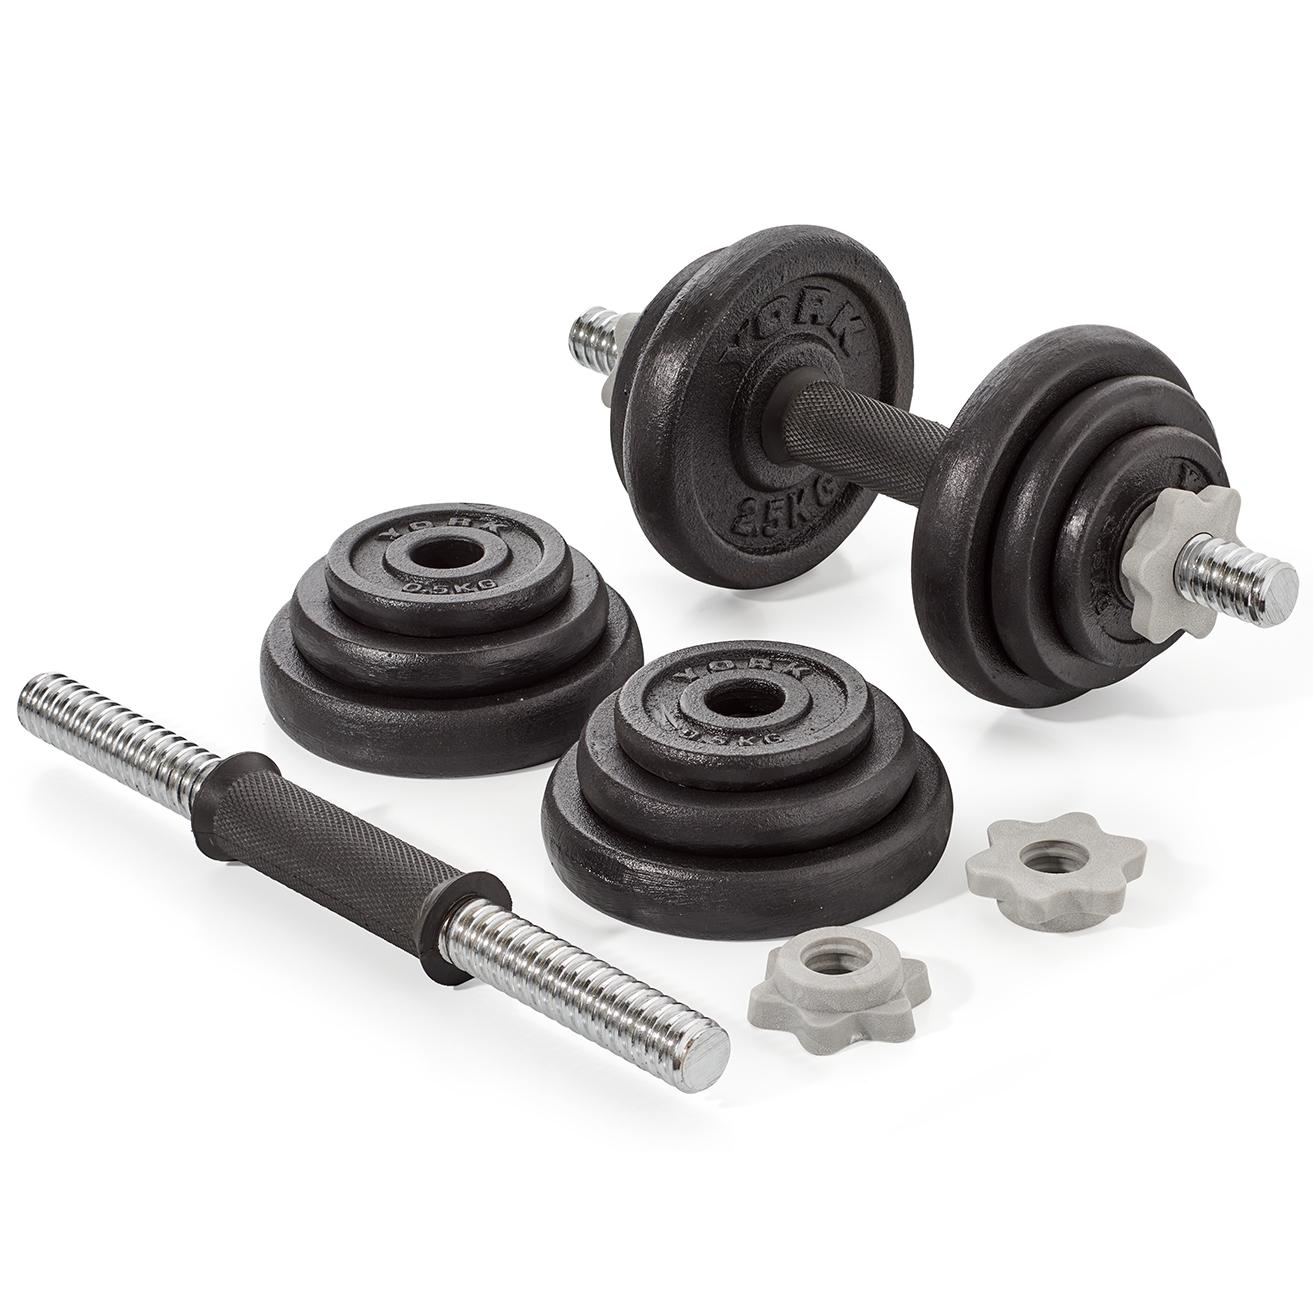 York Dumbbell Exercise Programme: York Fitness 20kg Cast Iron Spinlock Dumbbell